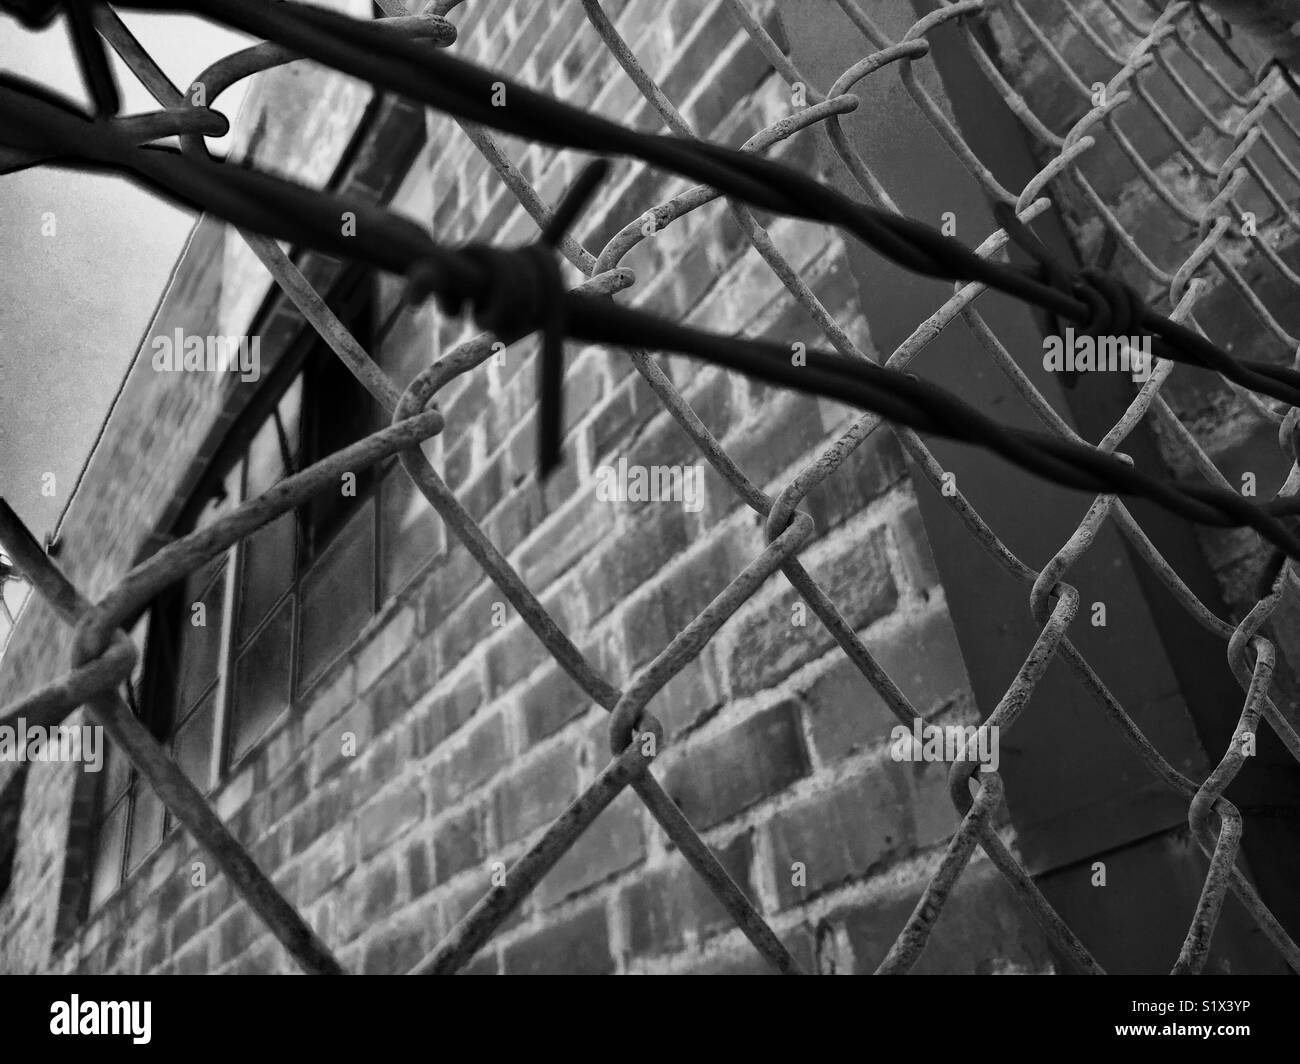 Brick building with barb wire Stock Photo: 310975162 - Alamy